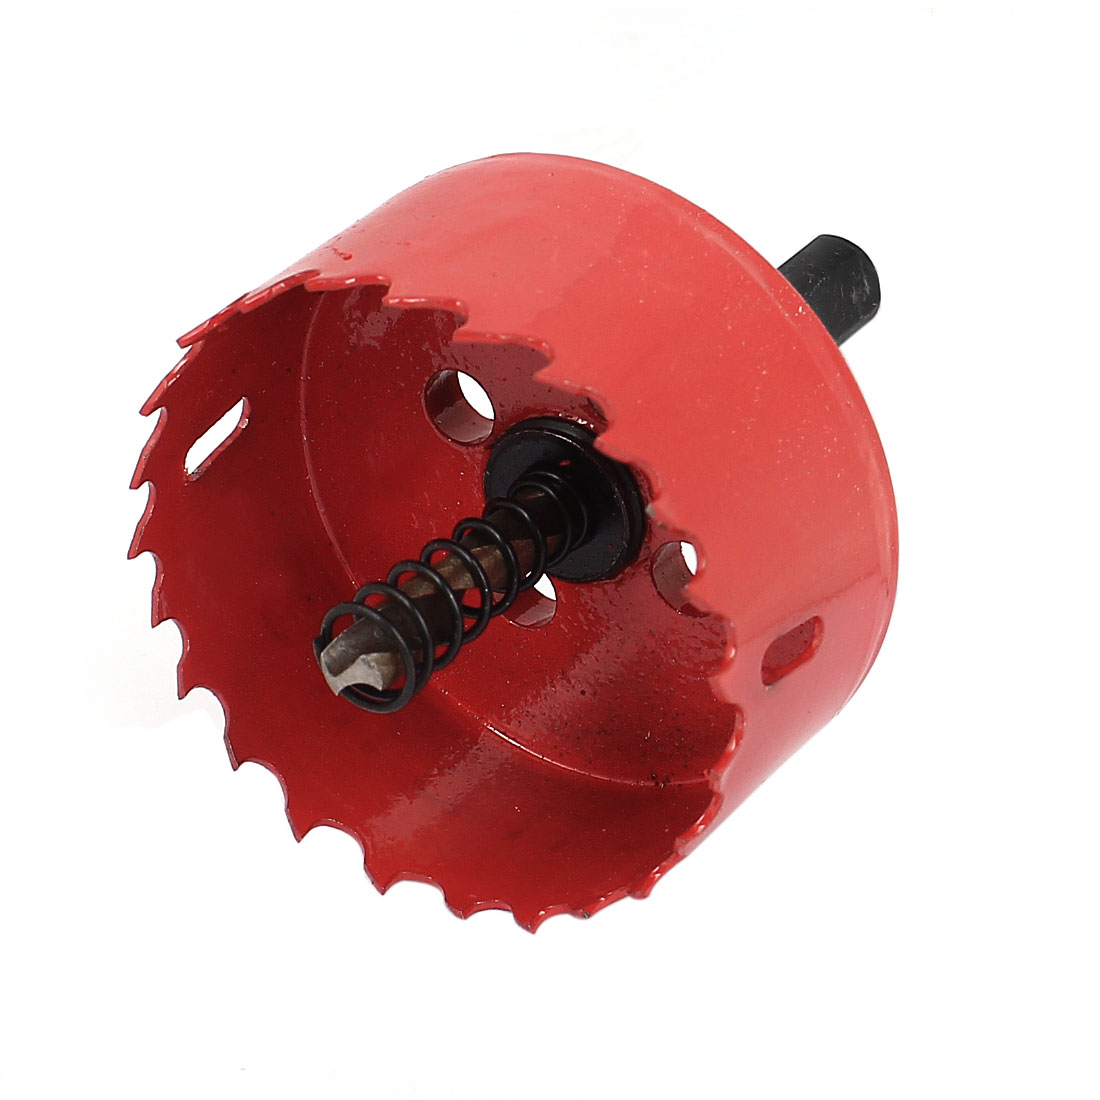 60mm Dia Bi Metal Hole Saw Drill Bit Cutter for Aluminum Iron Sheet Pipe Wood